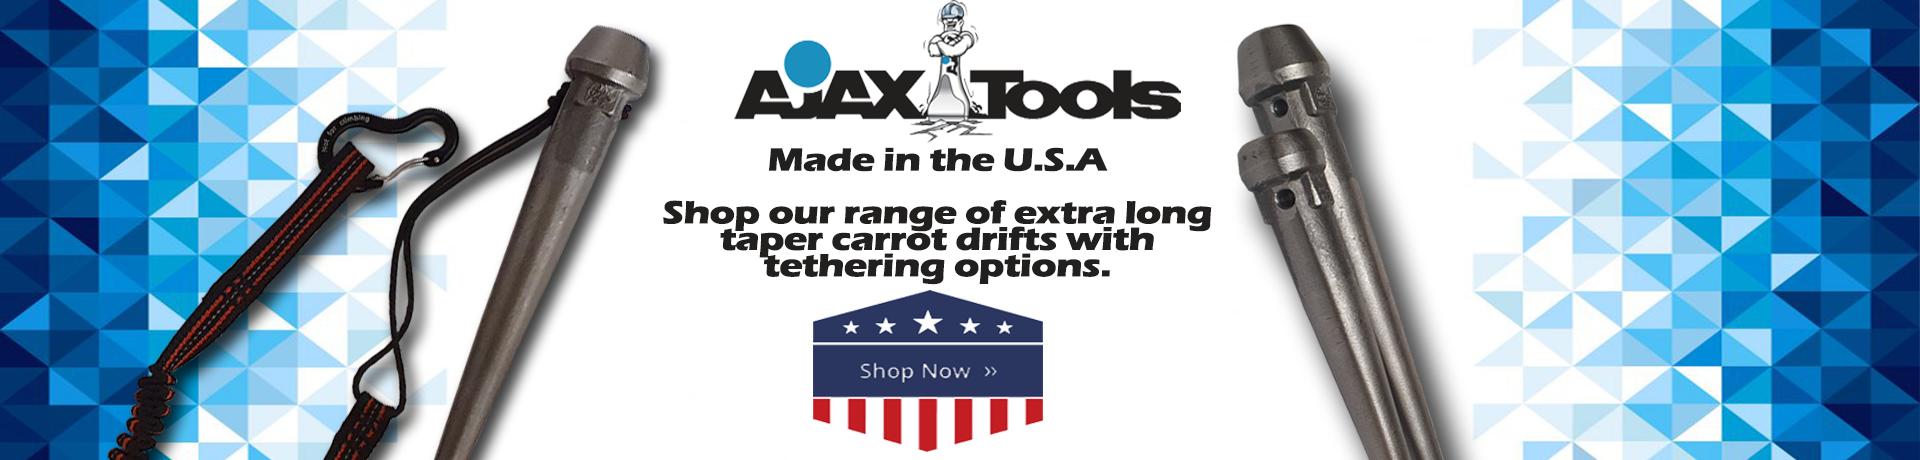 AJAX Tools Carrot Drifts